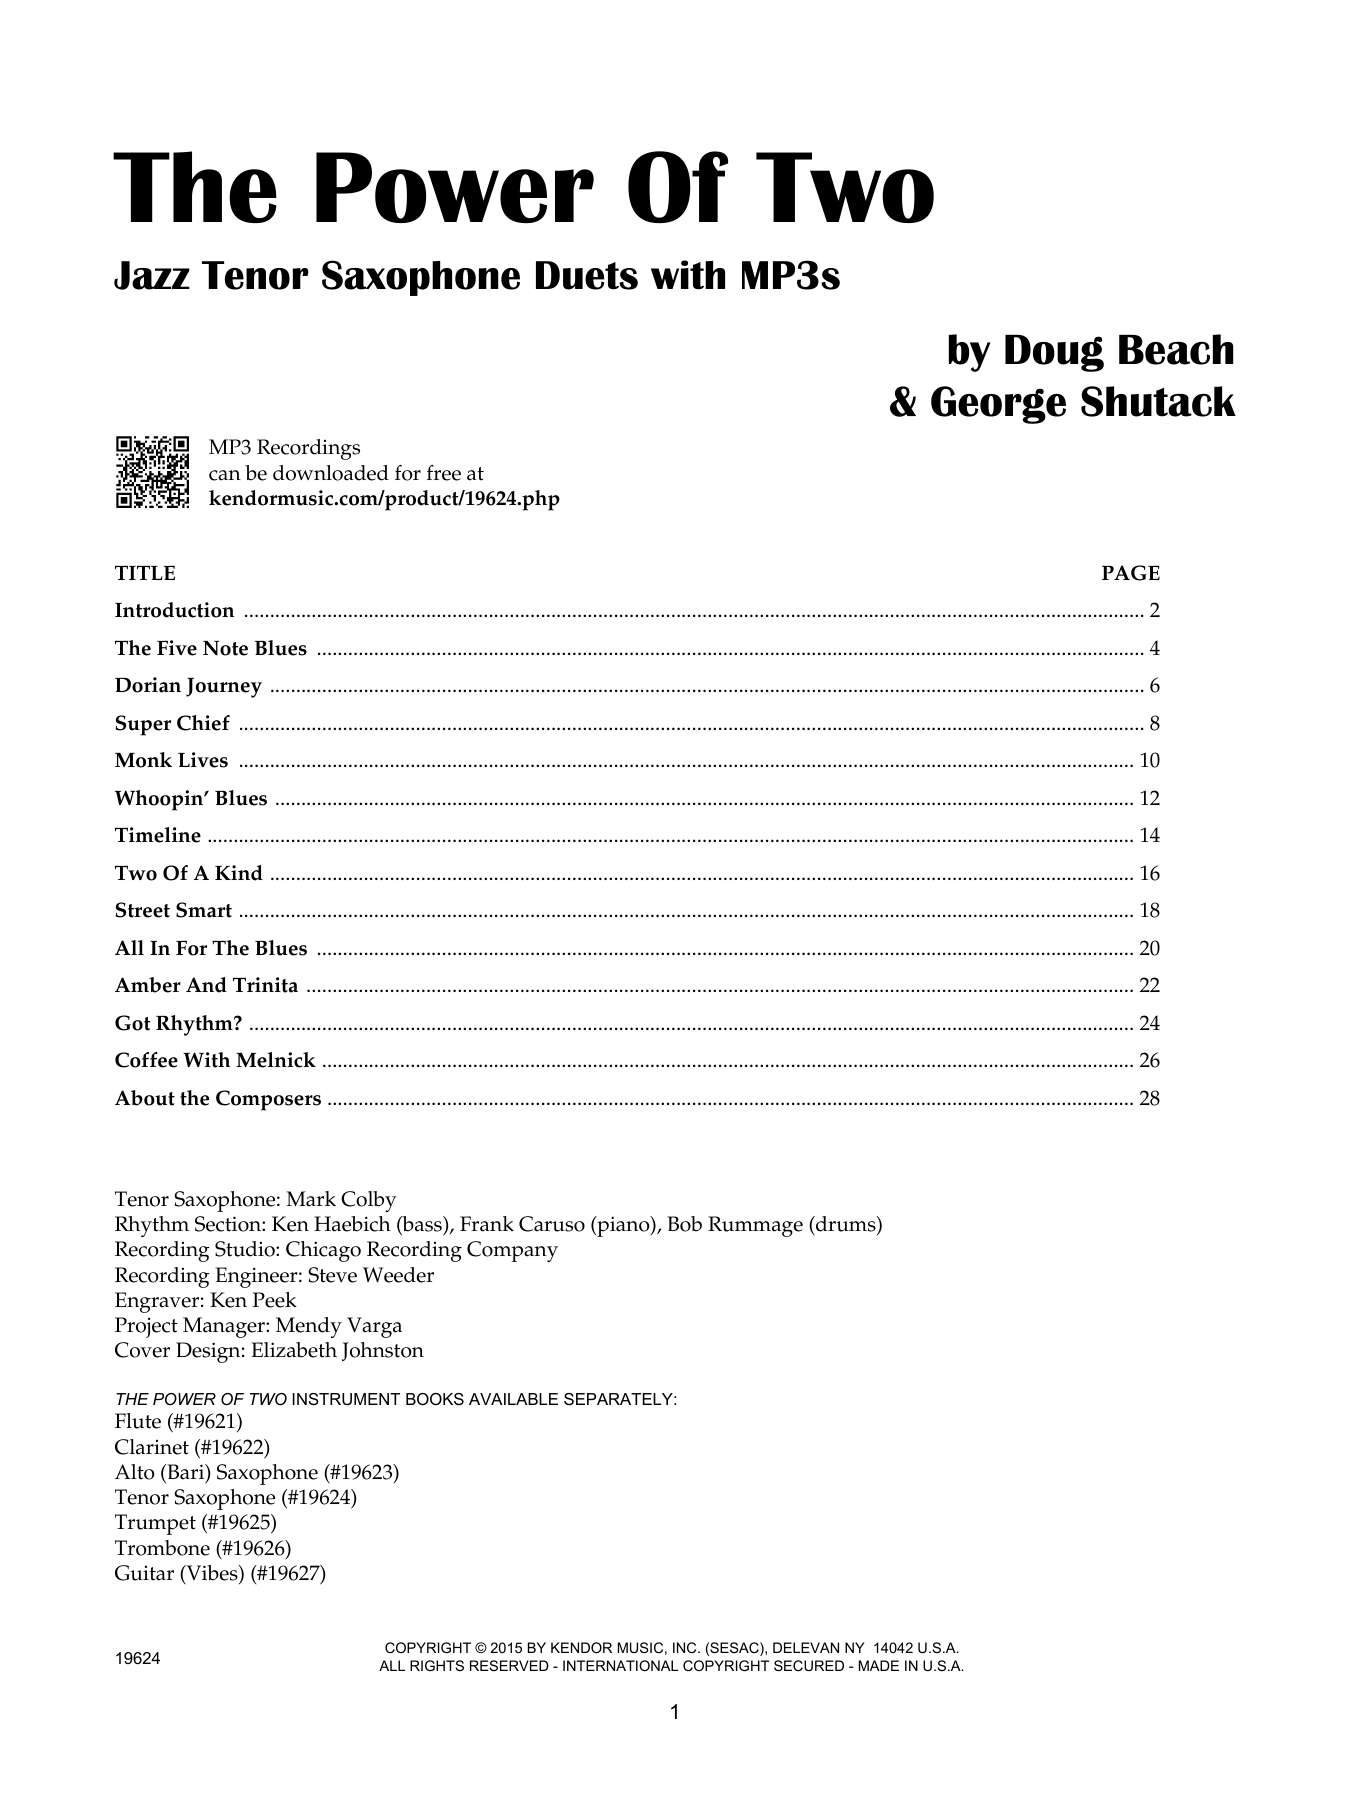 Doug Beach The Power Of Two - Tenor Saxophone sheet music notes and chords